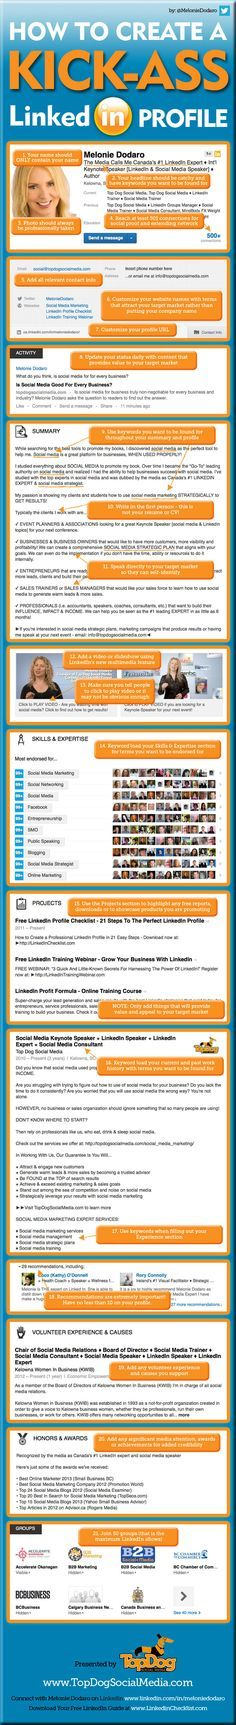 The Ultimate LinkedIn Profile Makeover [Infographic of the